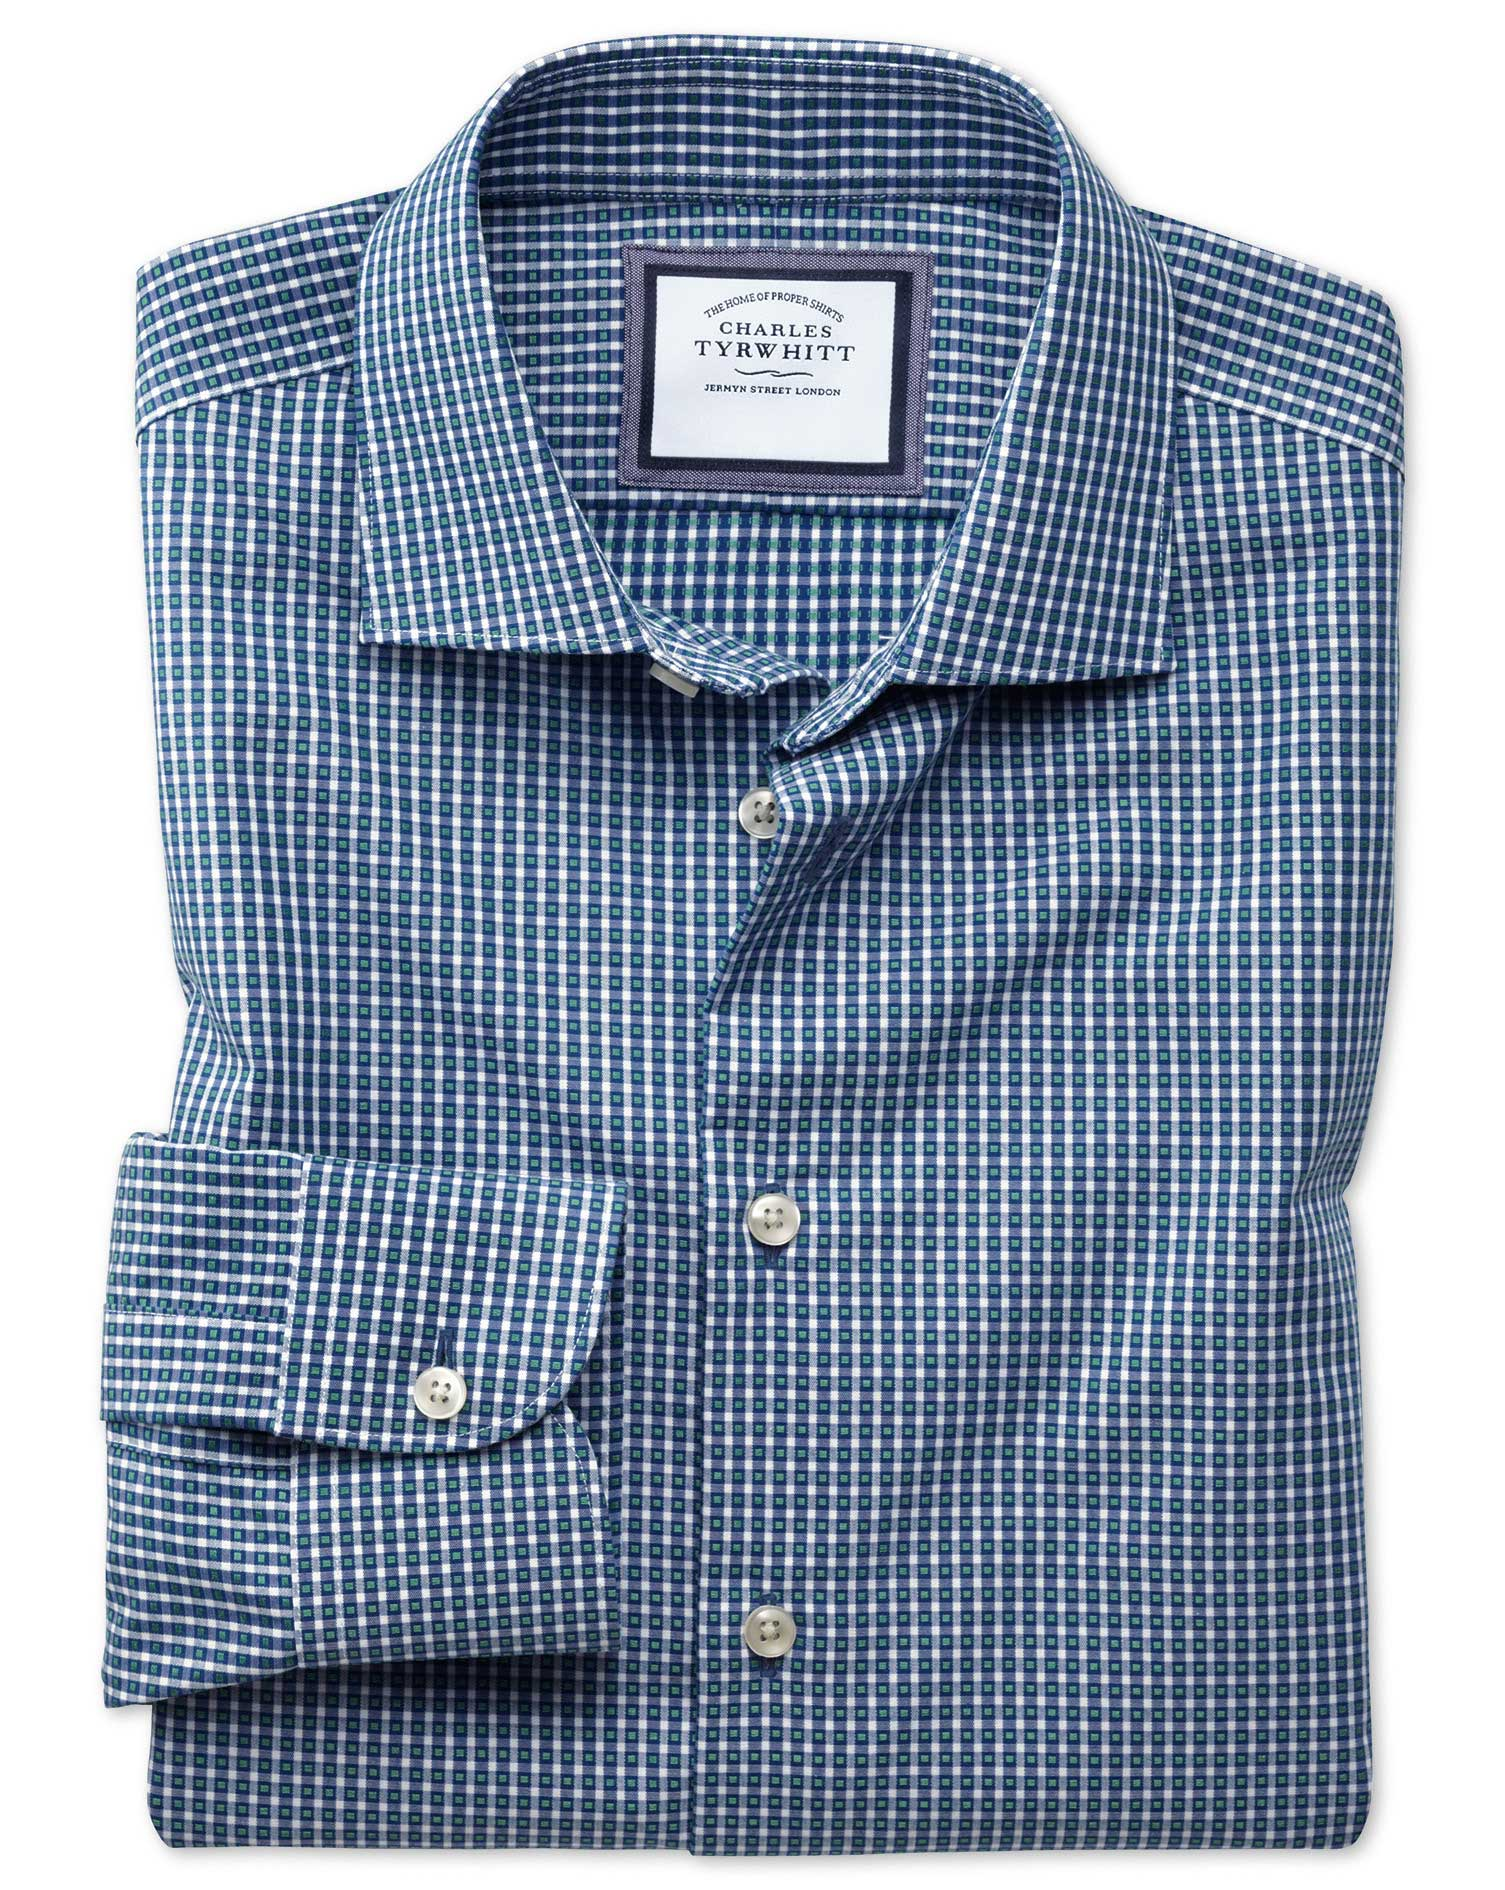 Classic Fit Semi-Cutaway Business Casual Non-Iron Modern Textures Navy Blue and Green Gingham Cotton